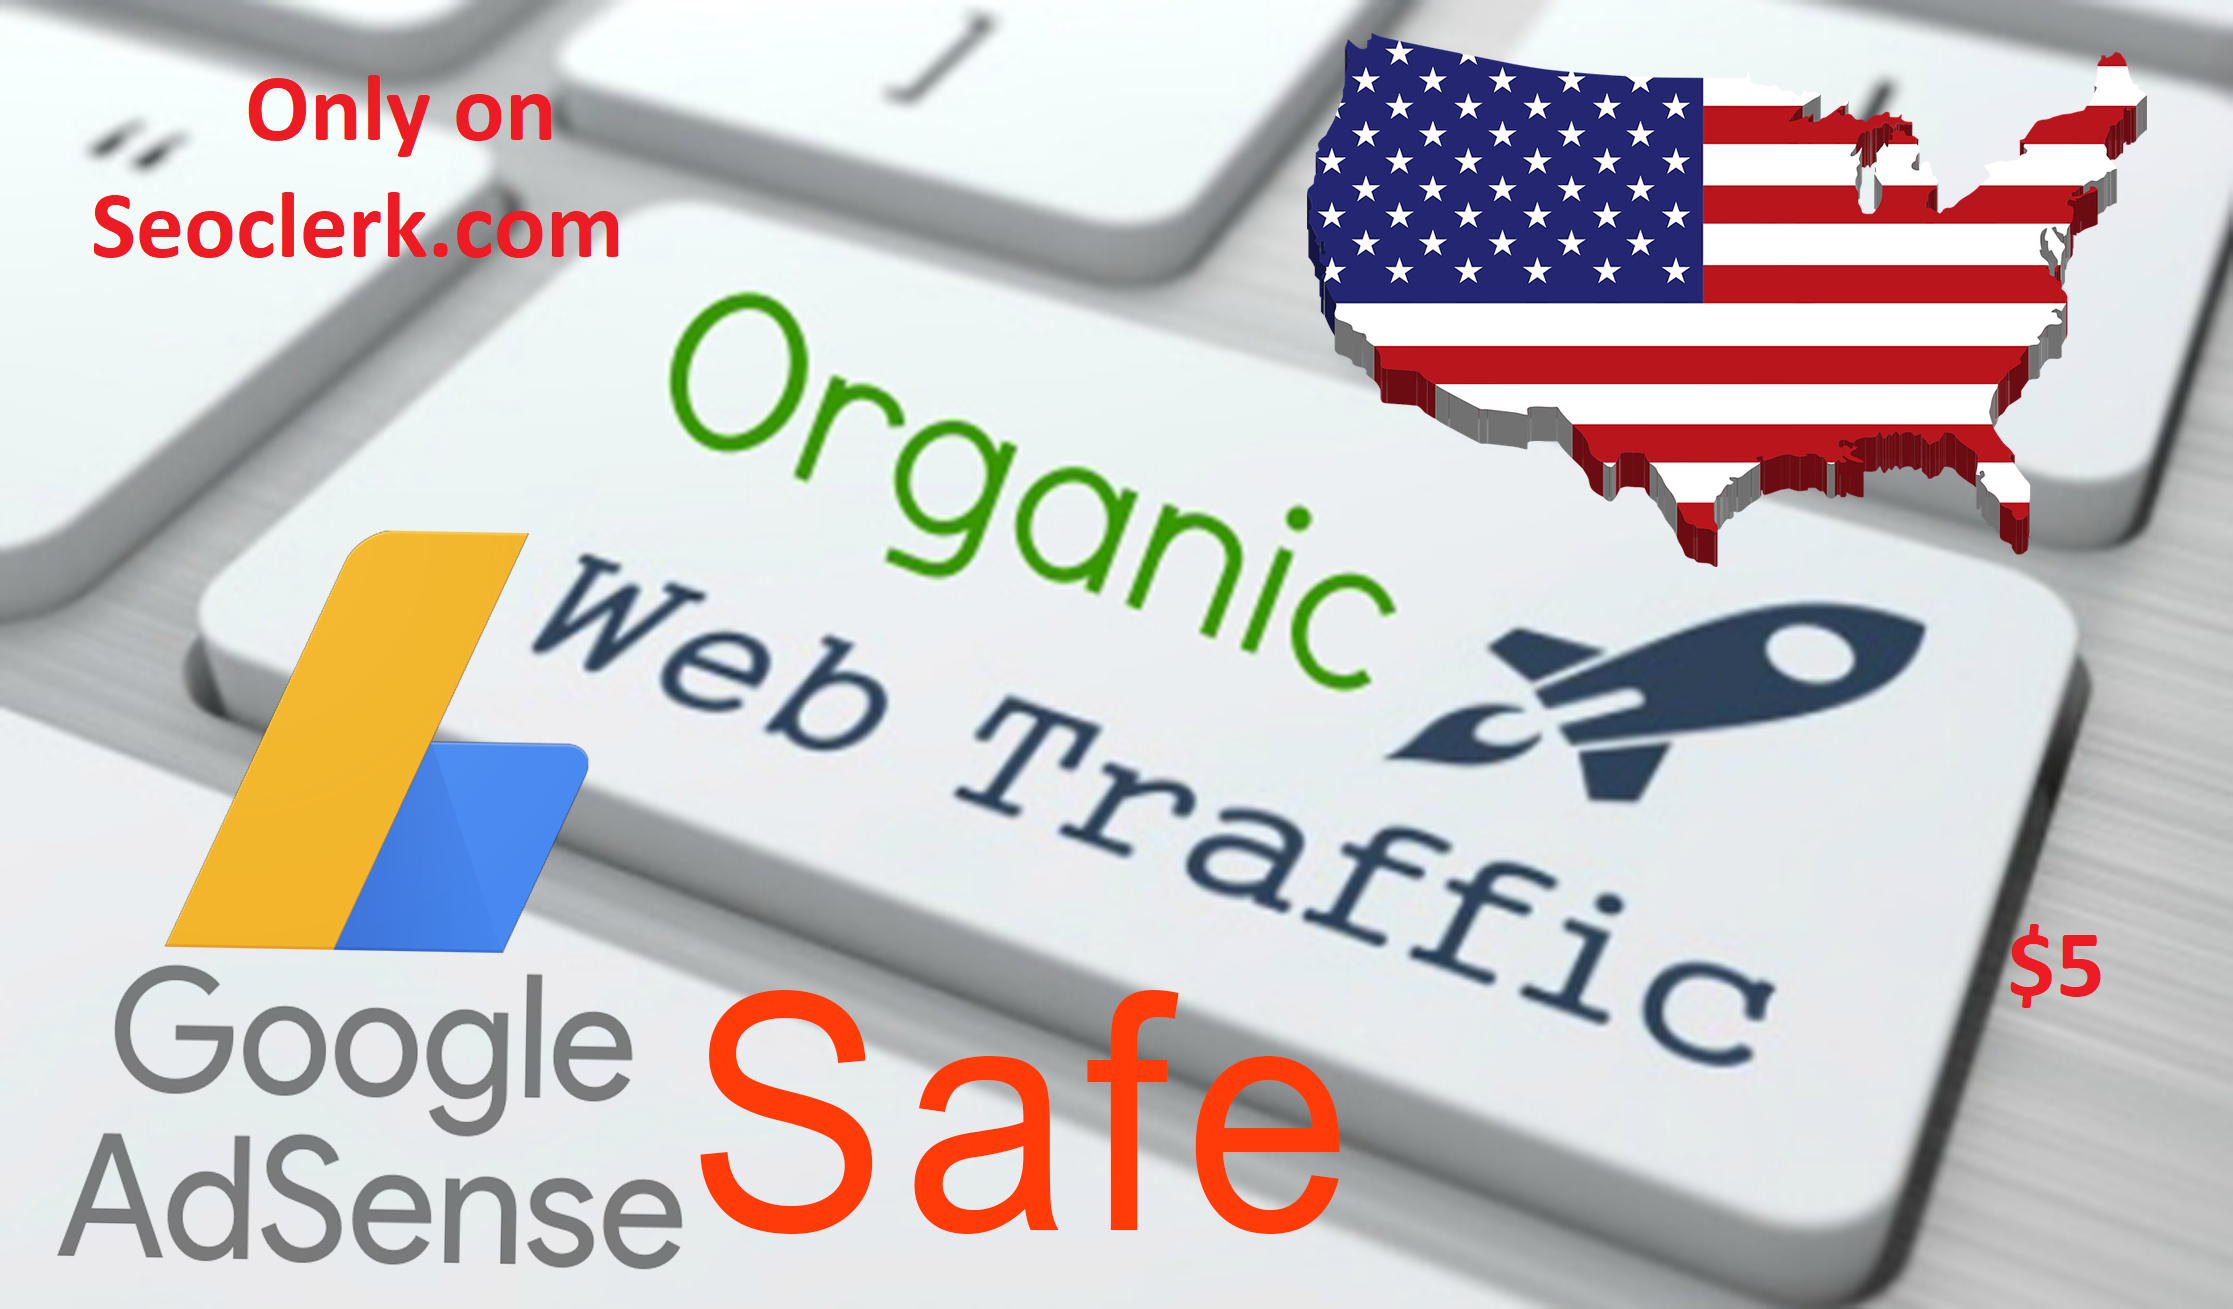 USA keyword target Adsense Safe, organc traffic, for ...